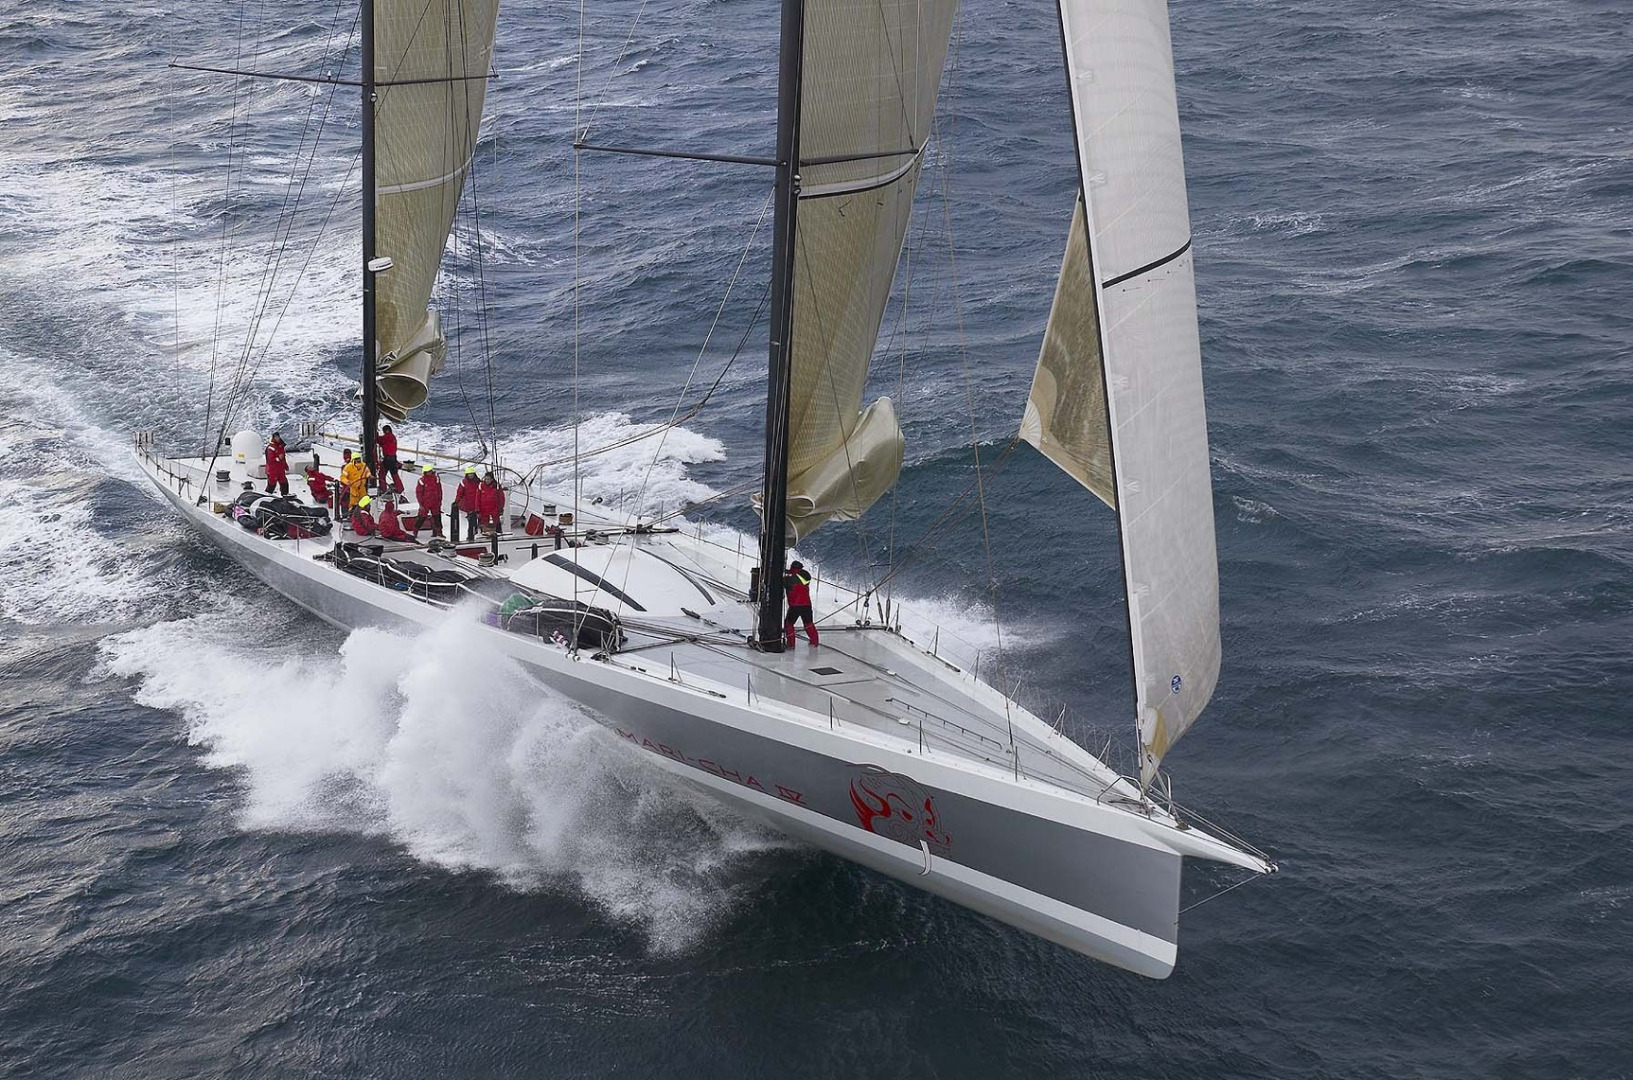 Owen Clarke Design provides services as consultant racing yacht designers and engineers to private owners, project managers, yards and professional teams worldwide. Our competences also include performance development consultancy, appendage design, composite and metal hardware engineering design for new yachts and refits.